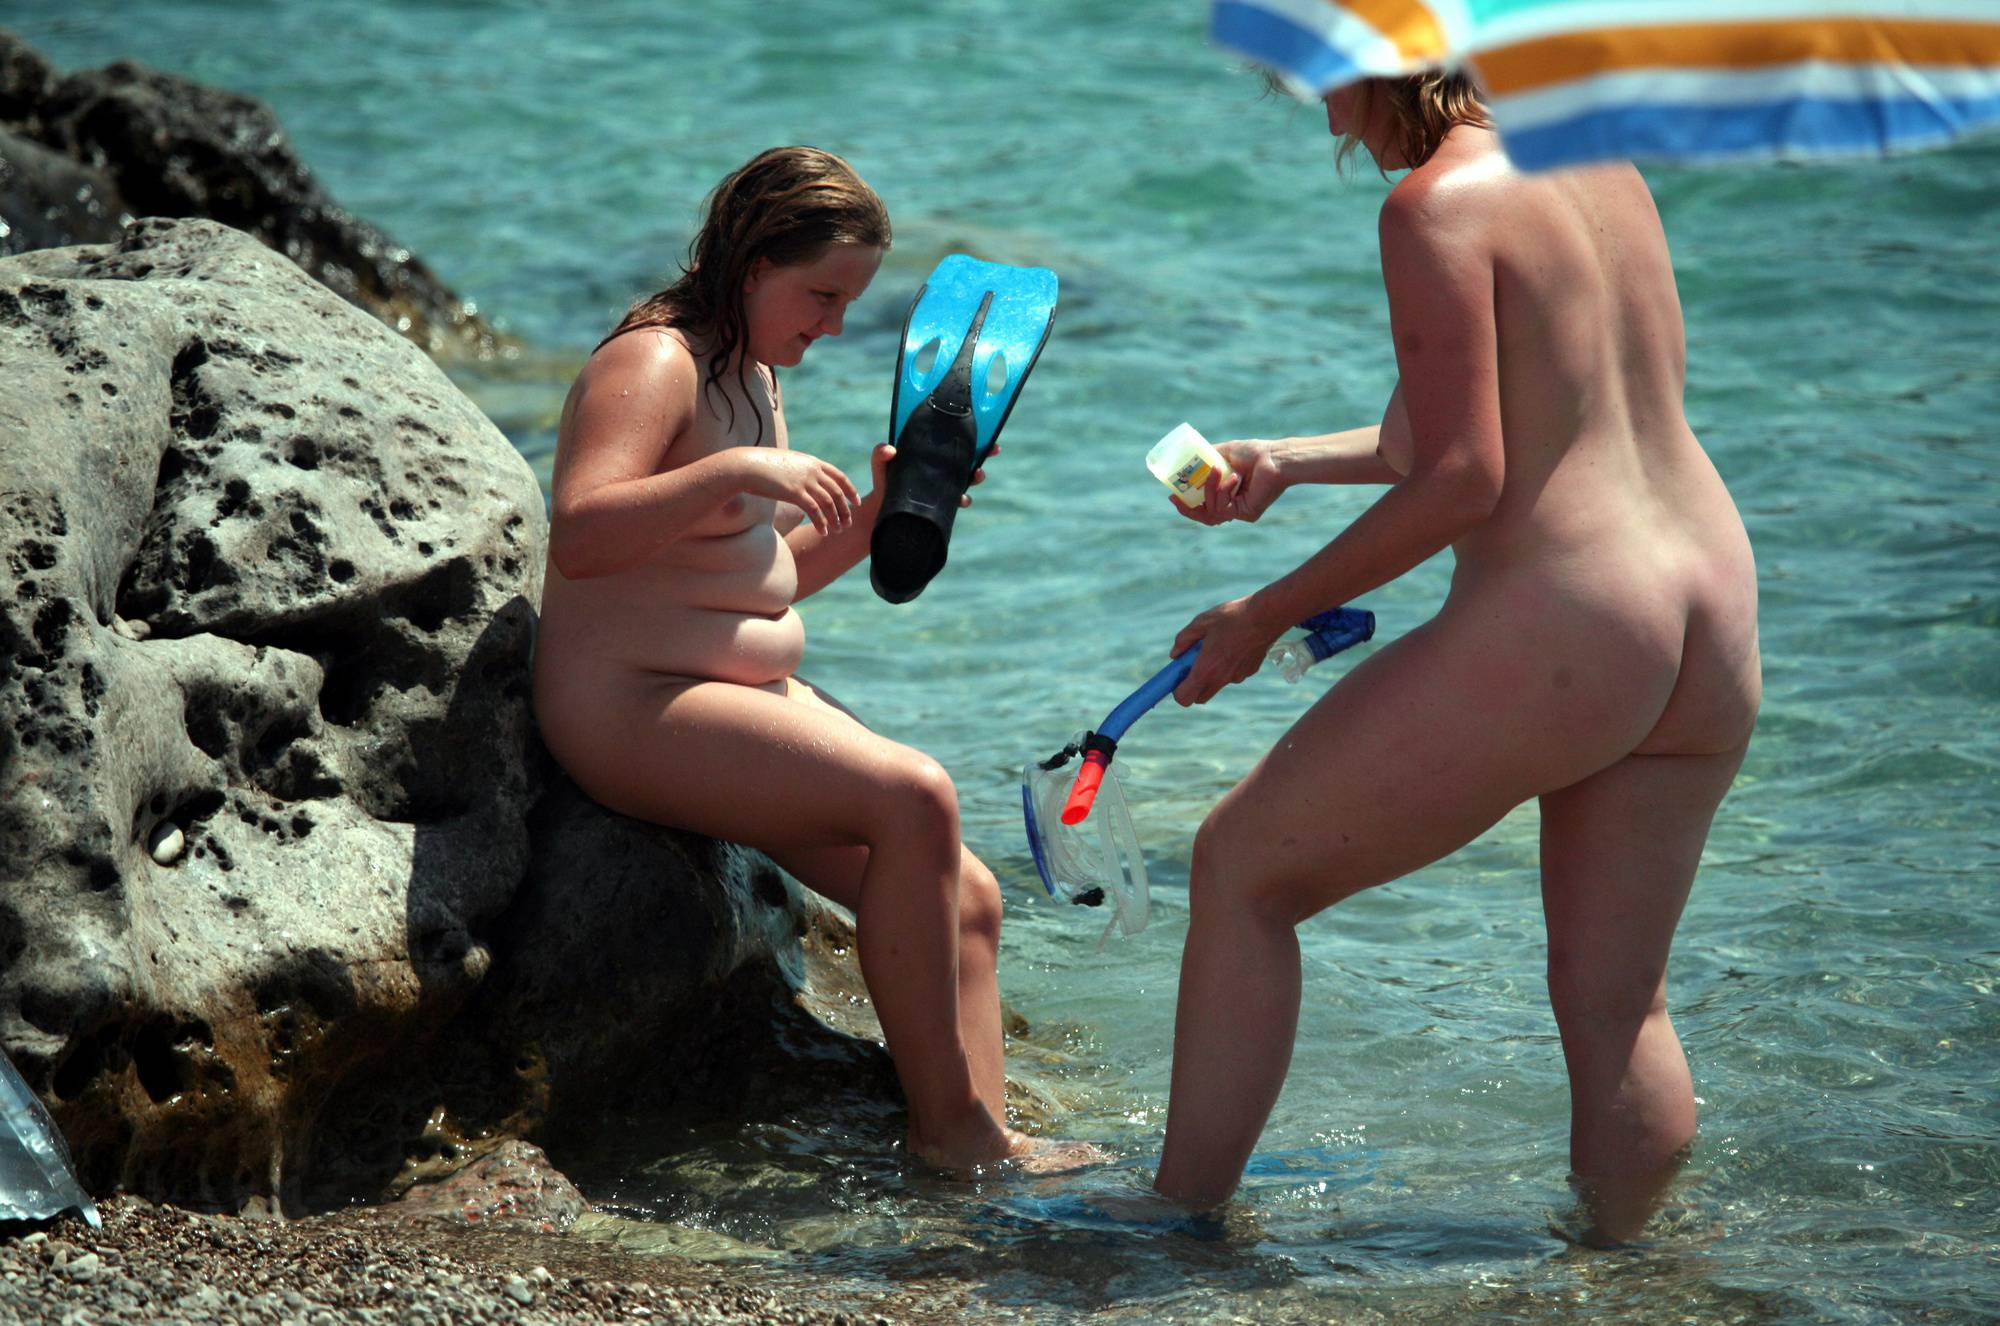 Nudist Pics Putting on the Scuba Gear - 1